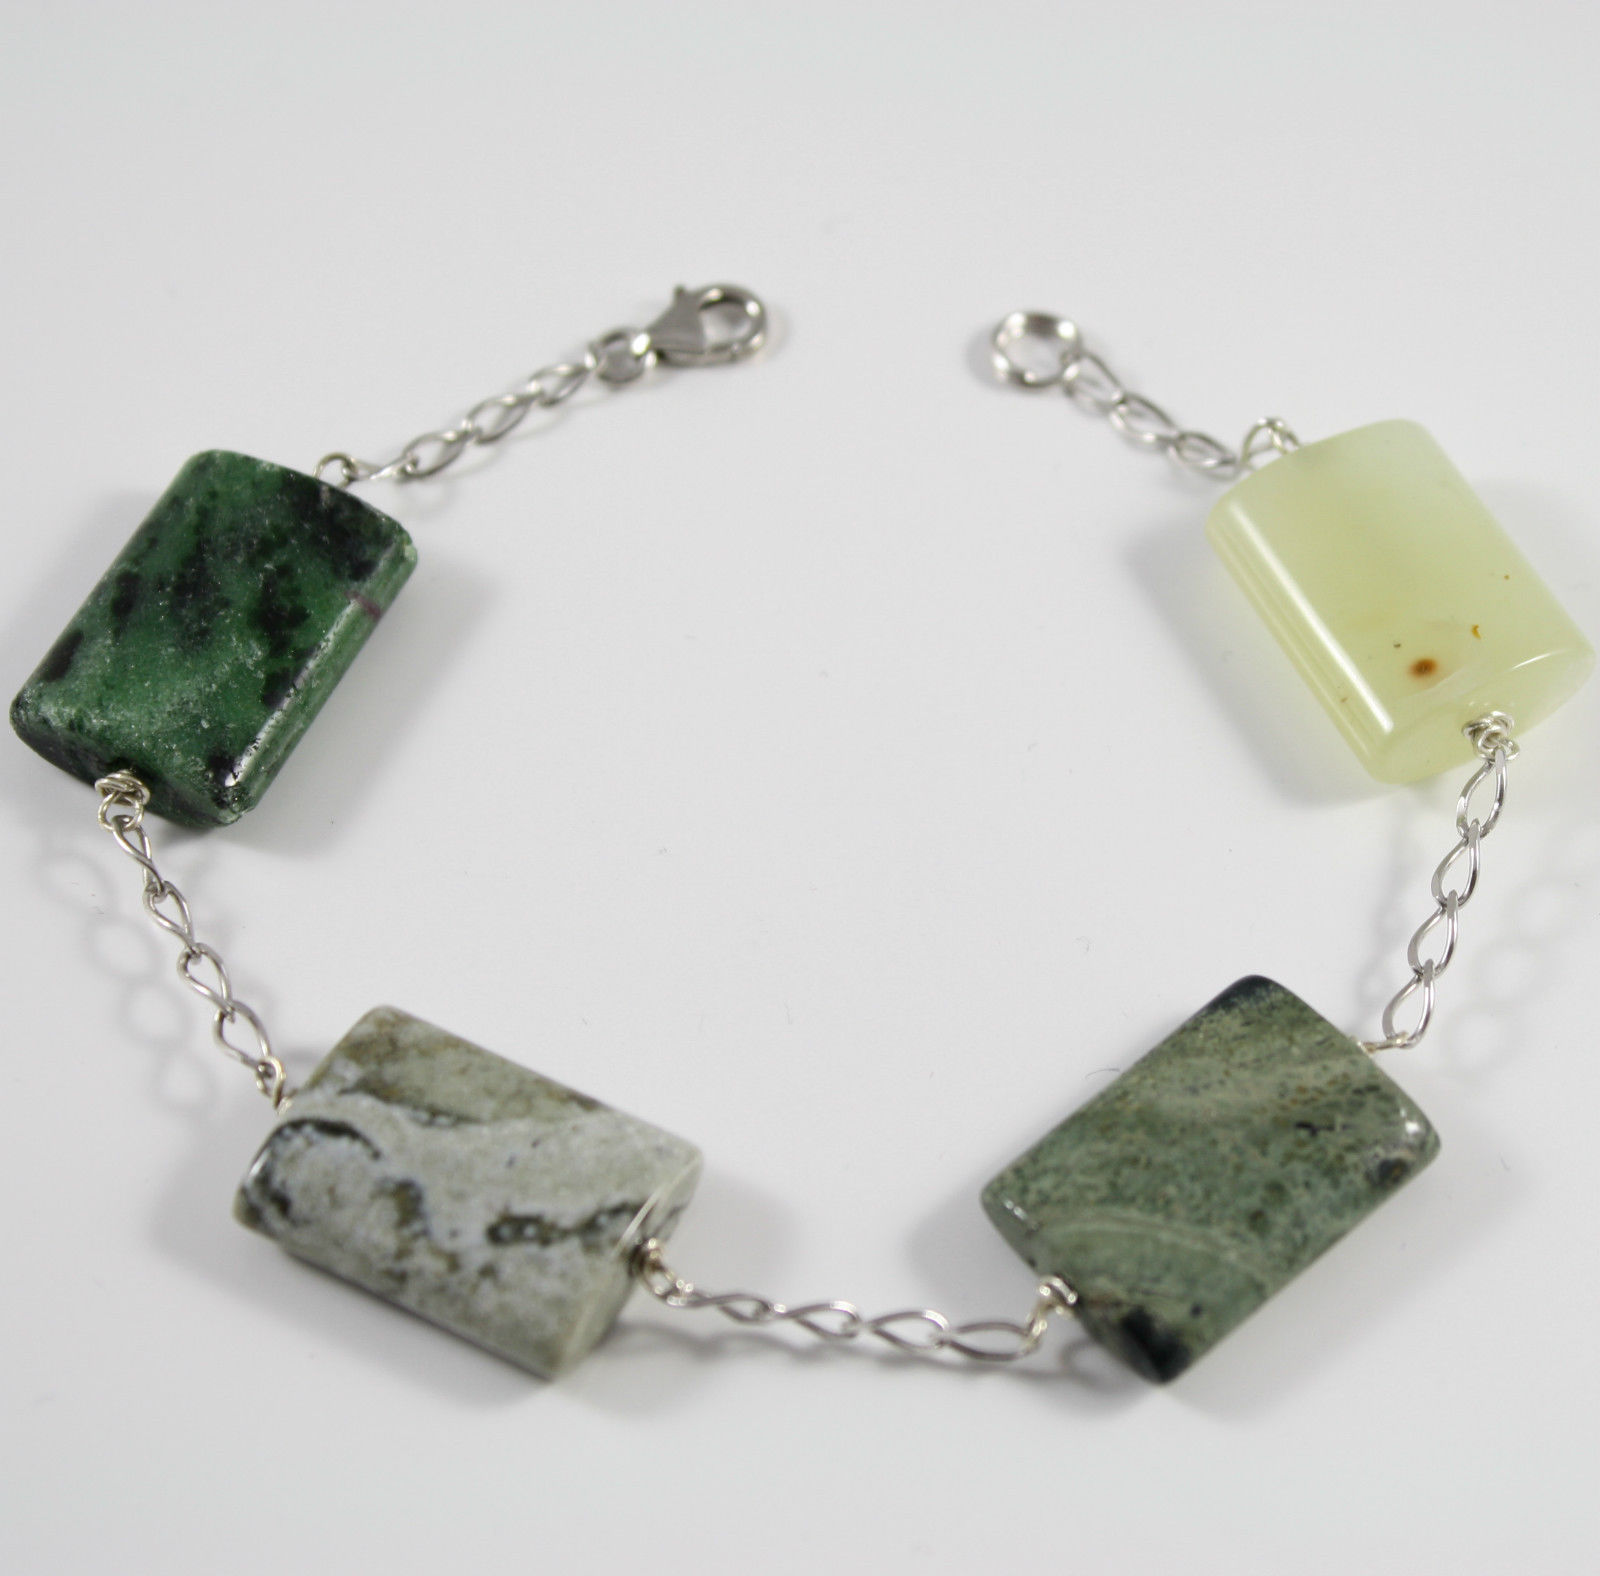 Bracelet in Sterling Silver 925 Rhodium with Green Jade Rectangles Faded